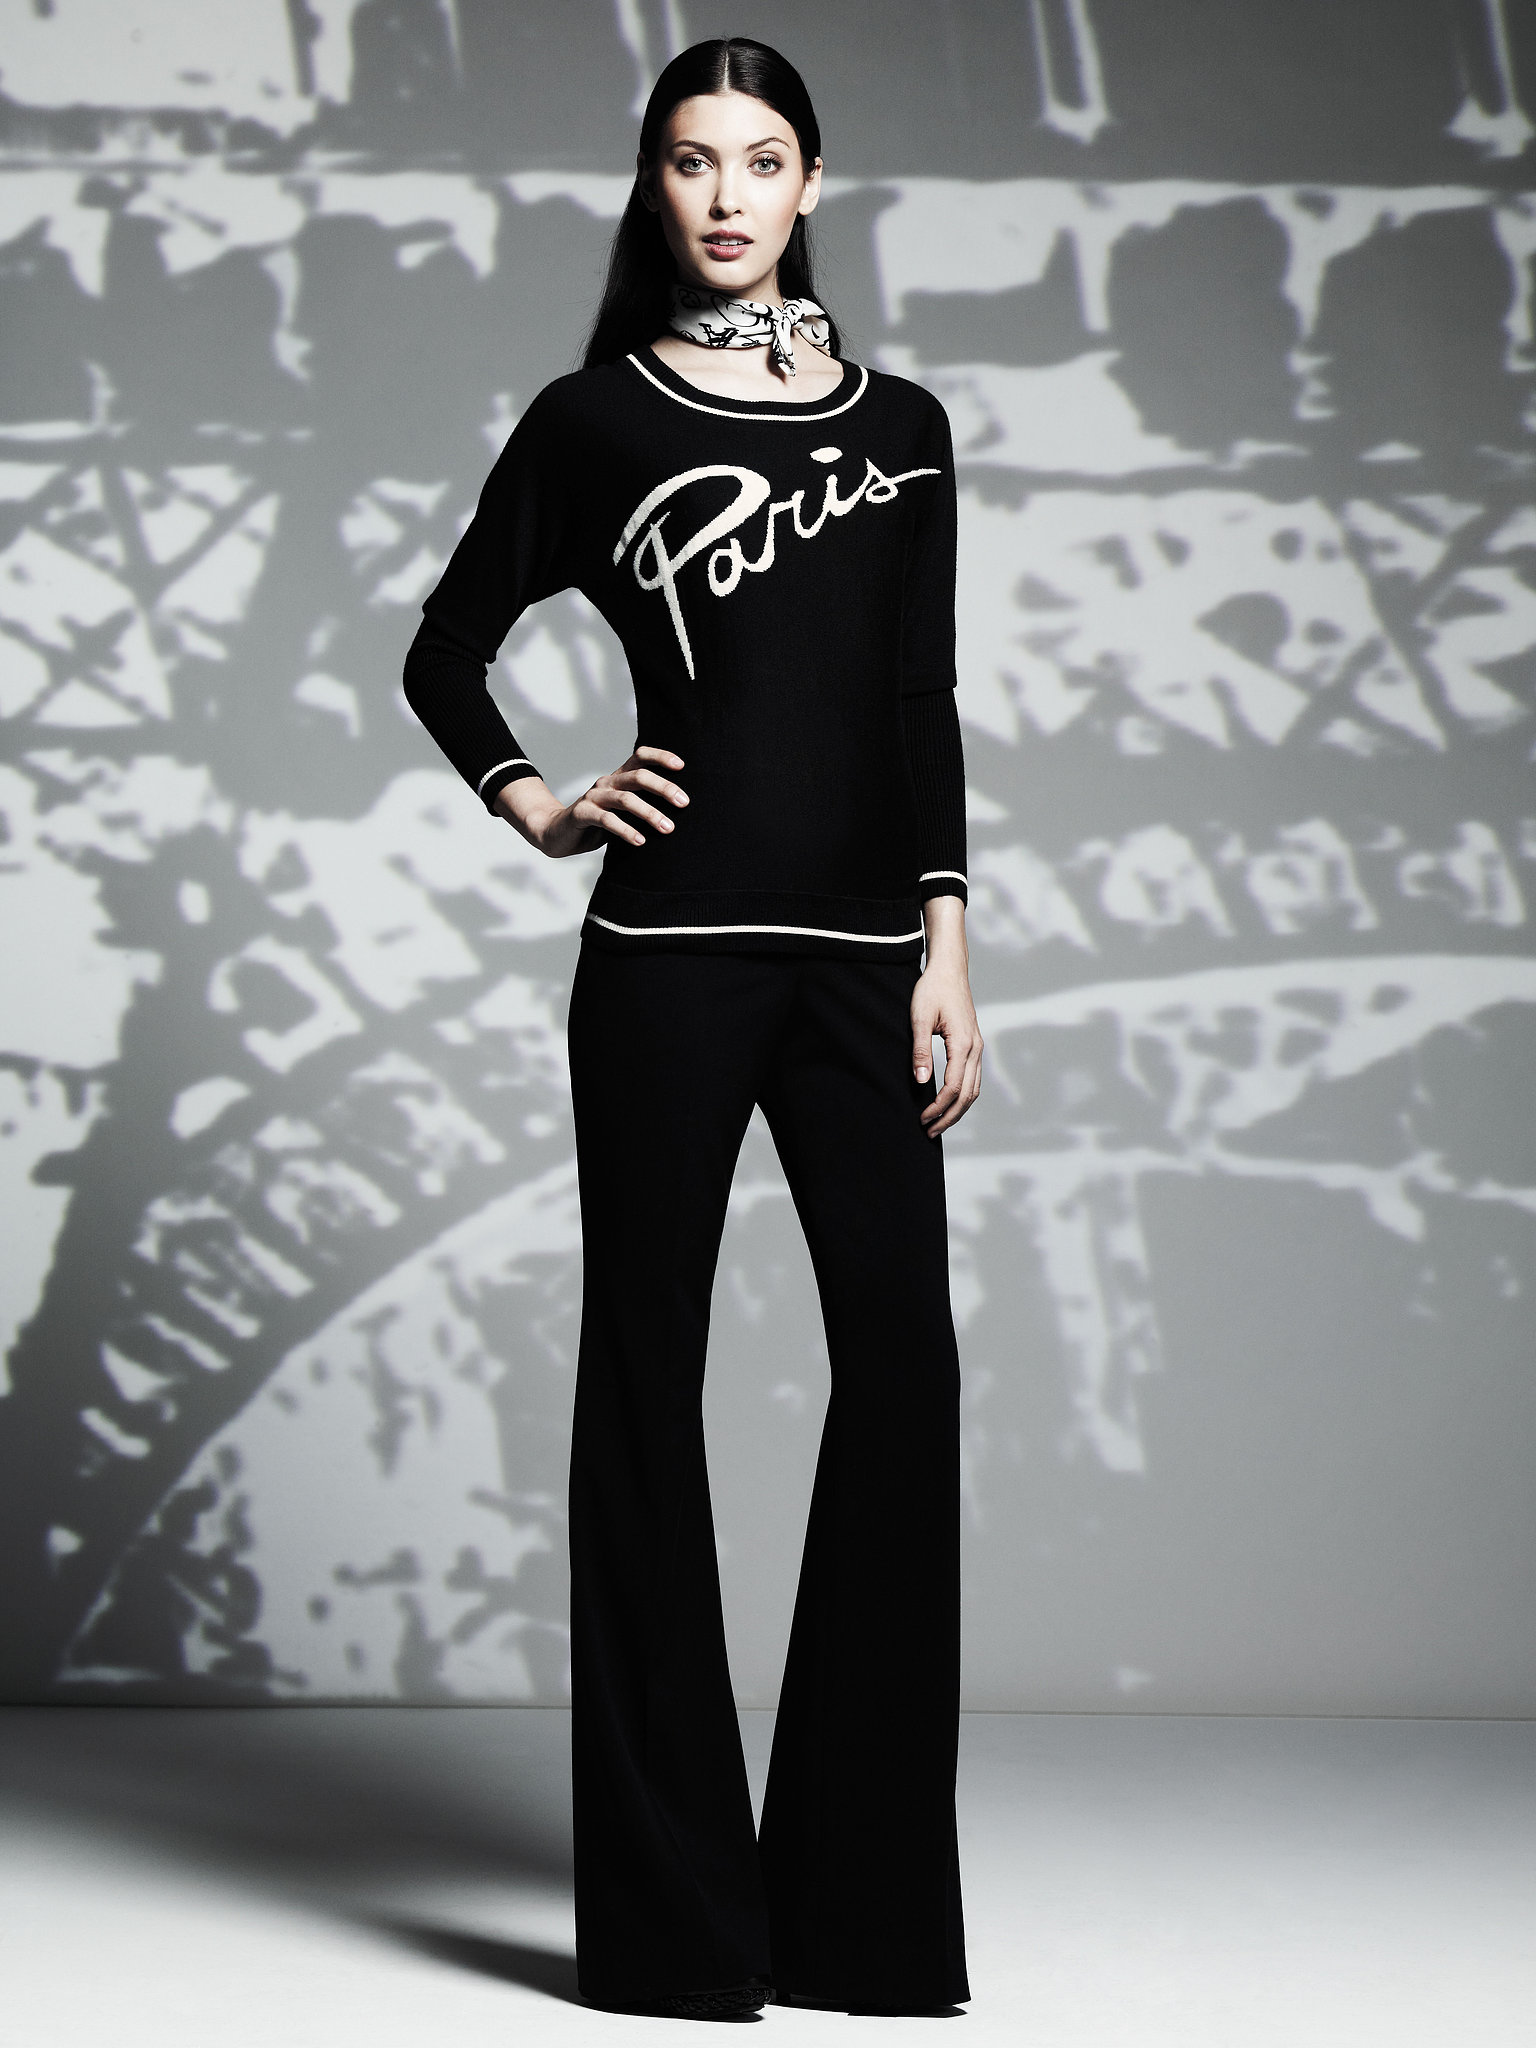 Wide-Neck Paris Pullover Sweater ($58), Flare Trousers ($54) Photo courtesy of Kohl's